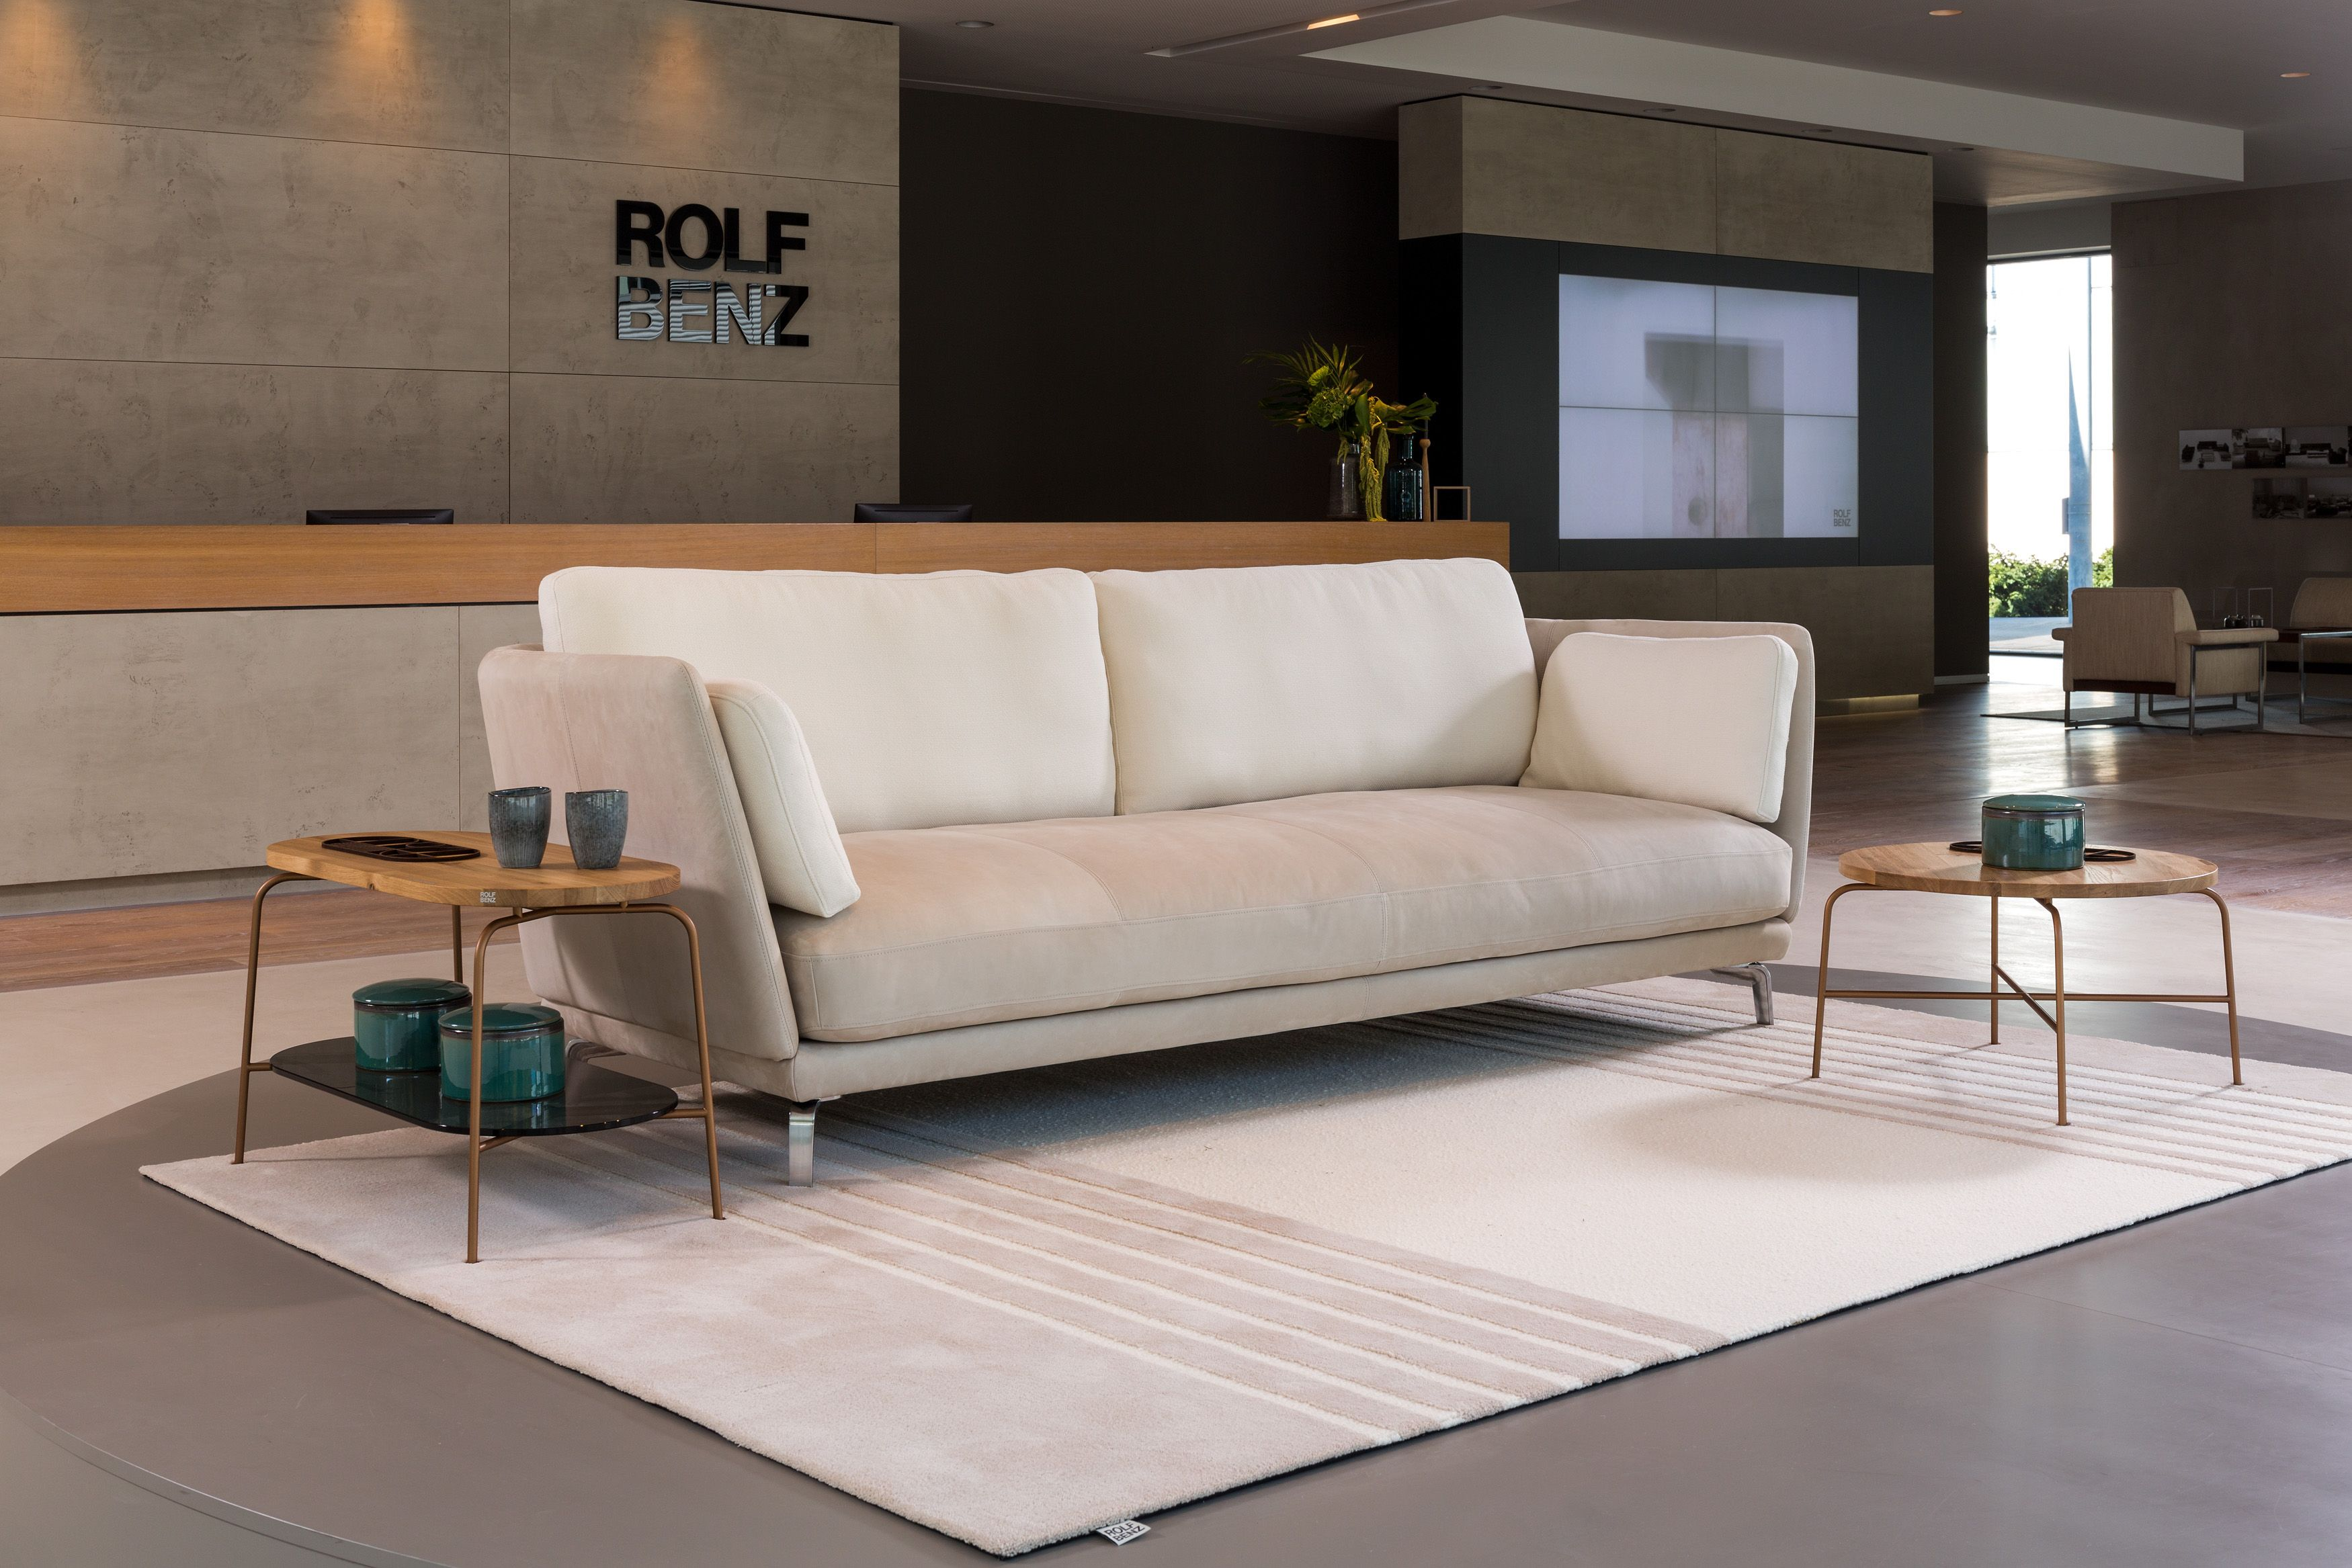 Rolf Benz NUVOLA sofa system allows you to create settings as large